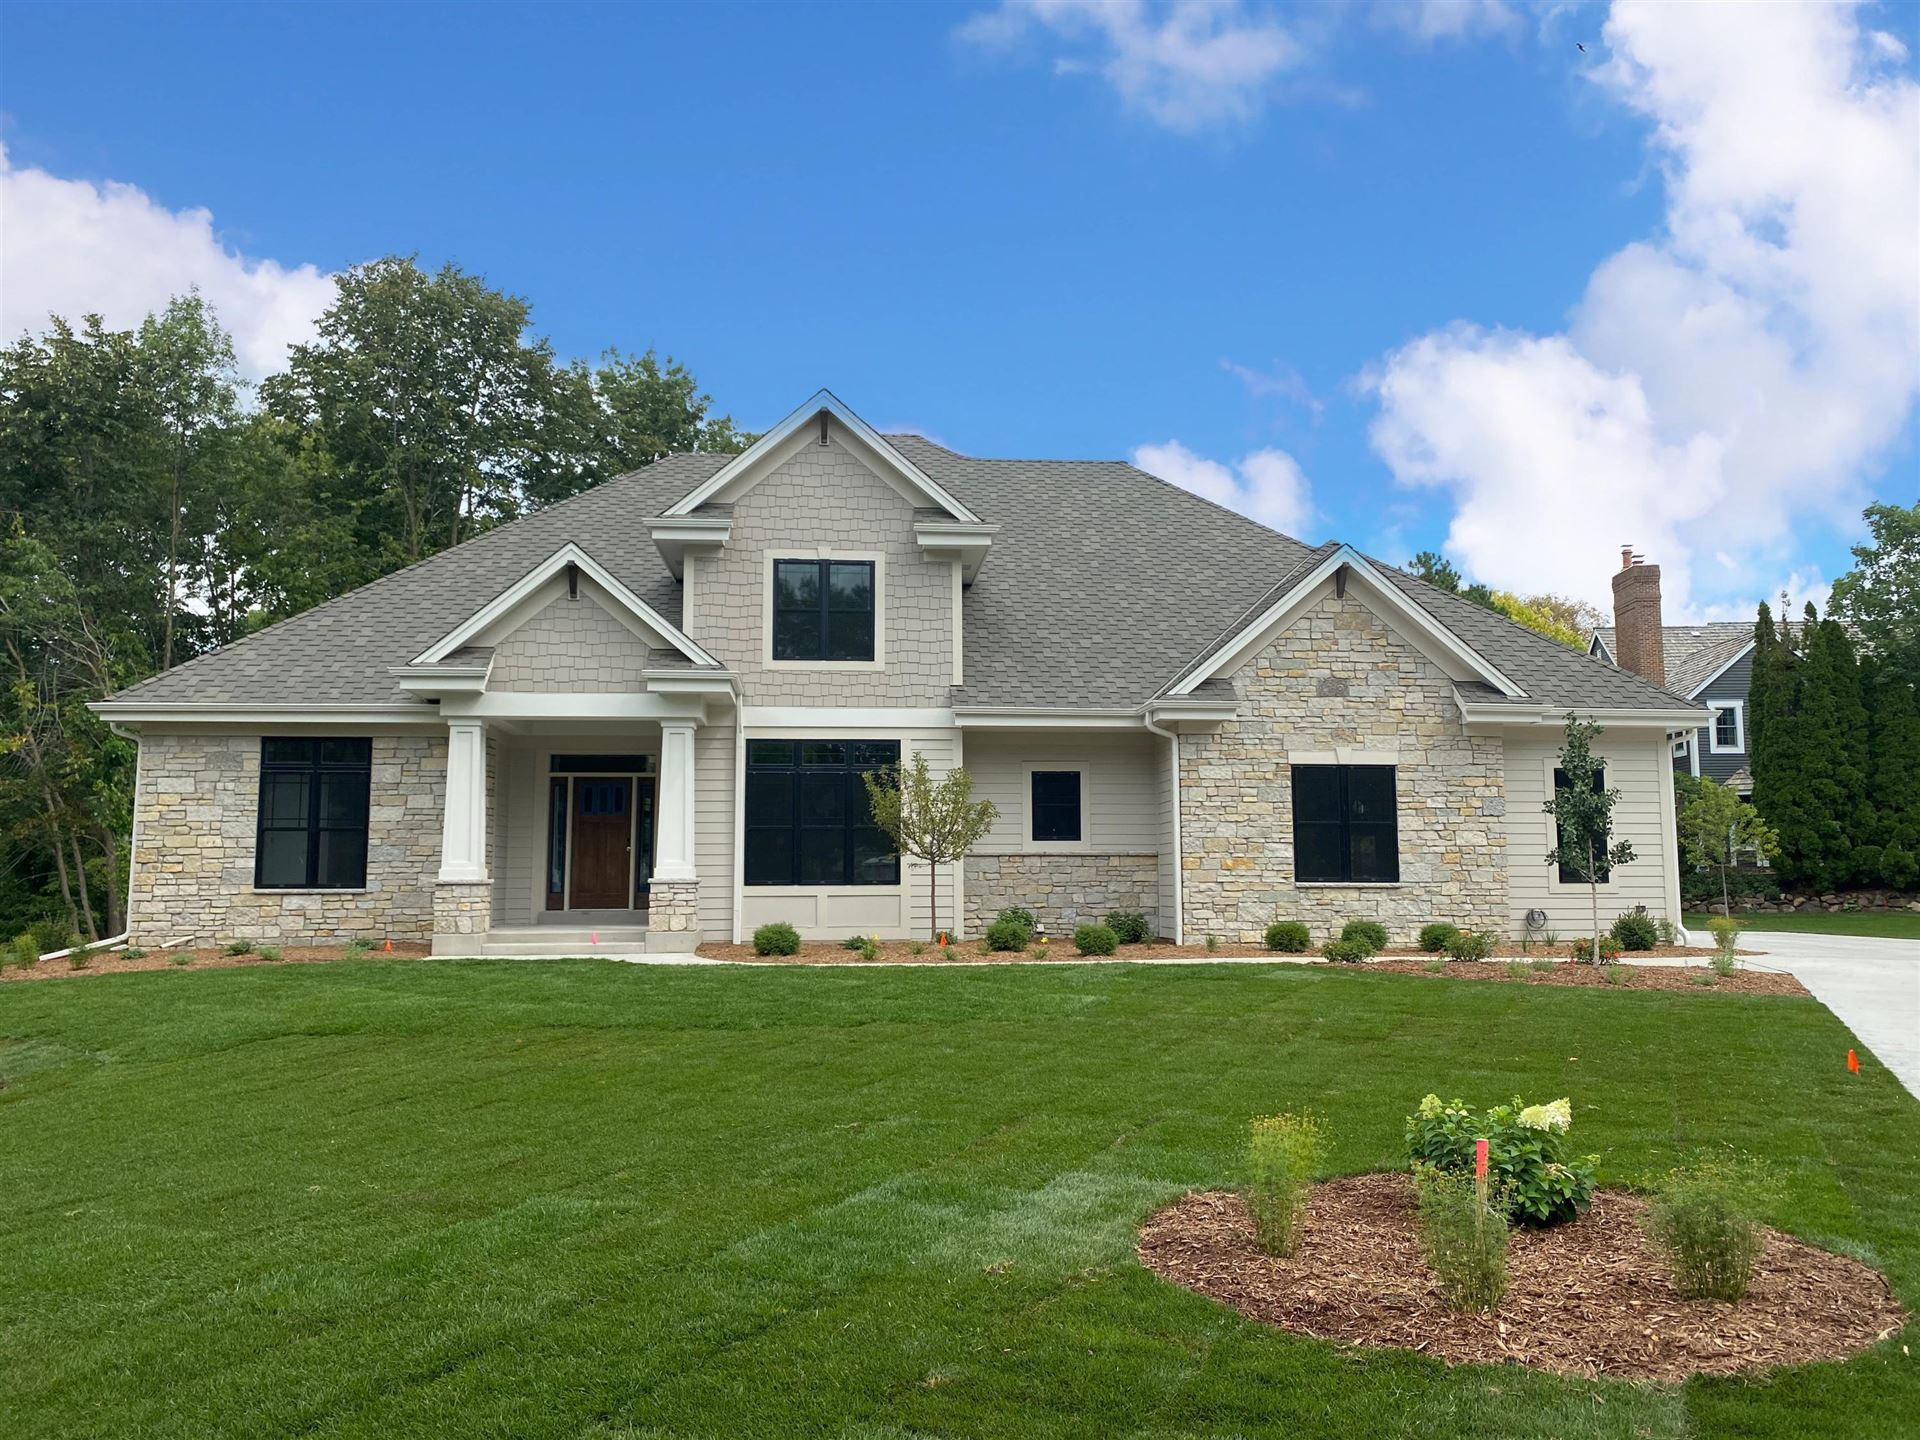 2520 Keats Ct, Brookfield, WI 53045 - #: 1680614